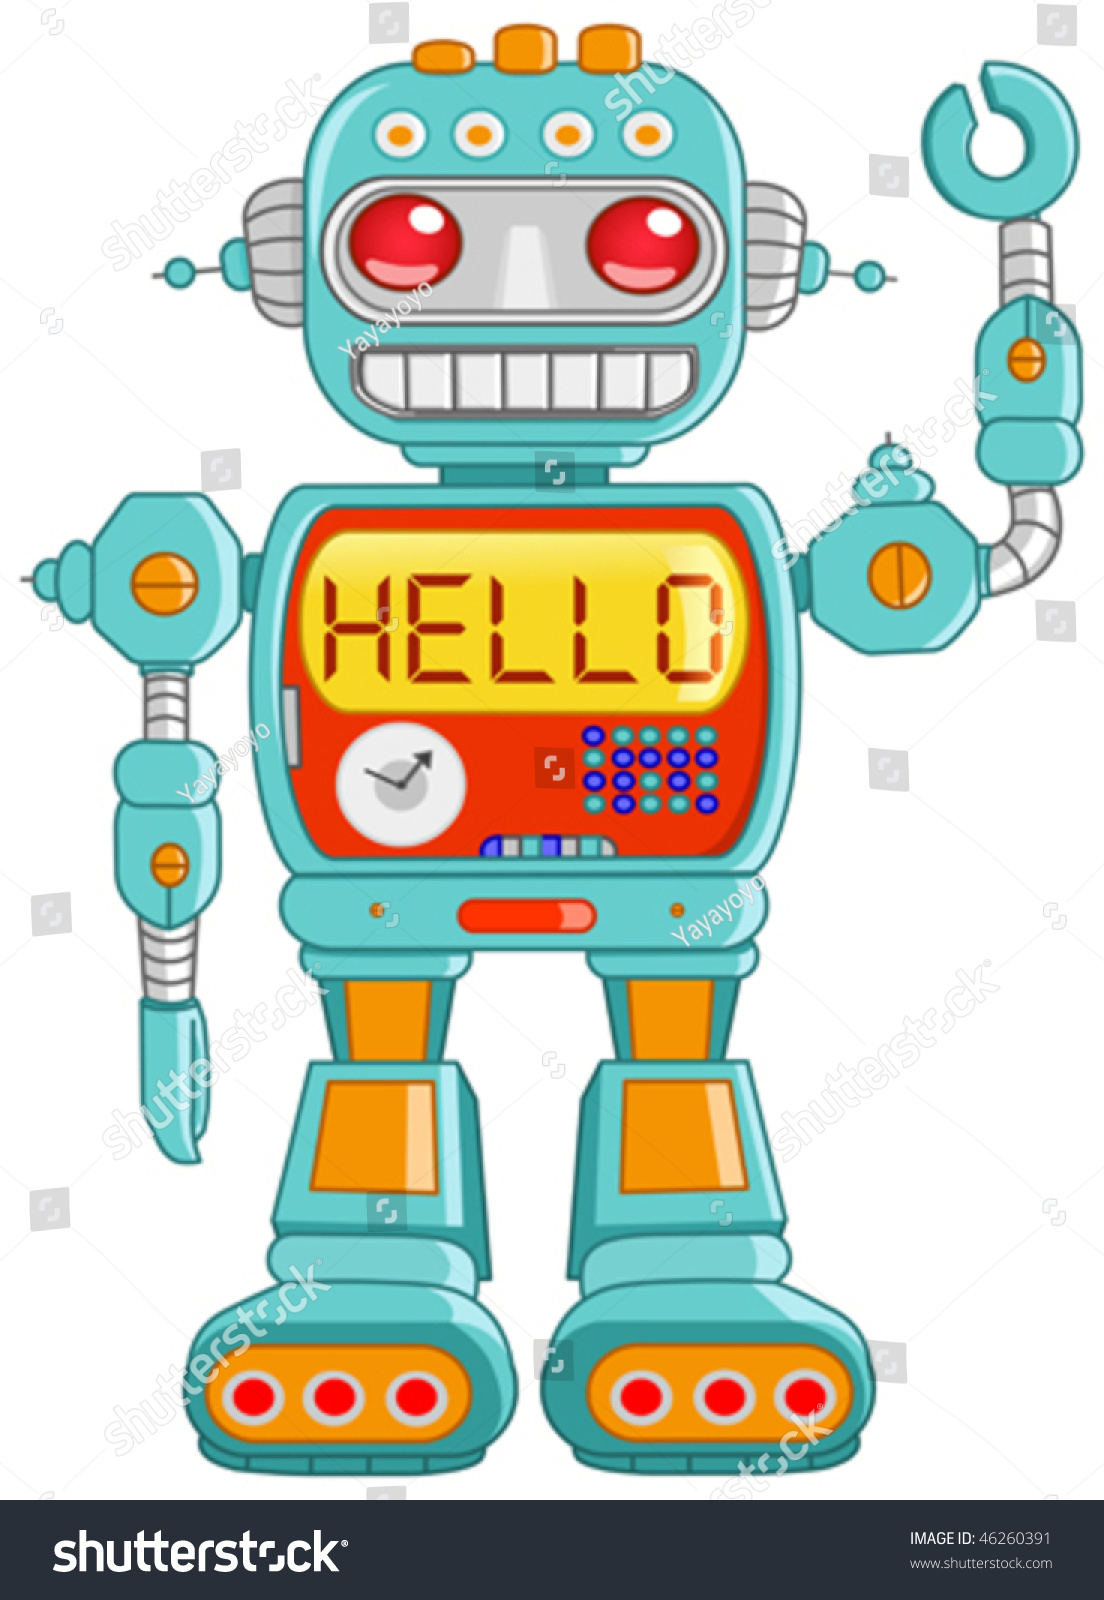 91862 Human Robot Collaboration  es Of Age furthermore Coolest Most Innovative Gadgets July 2017 furthermore 485825878528783177 in addition Lotr Funny further Gadgetsin. on gesture control robot